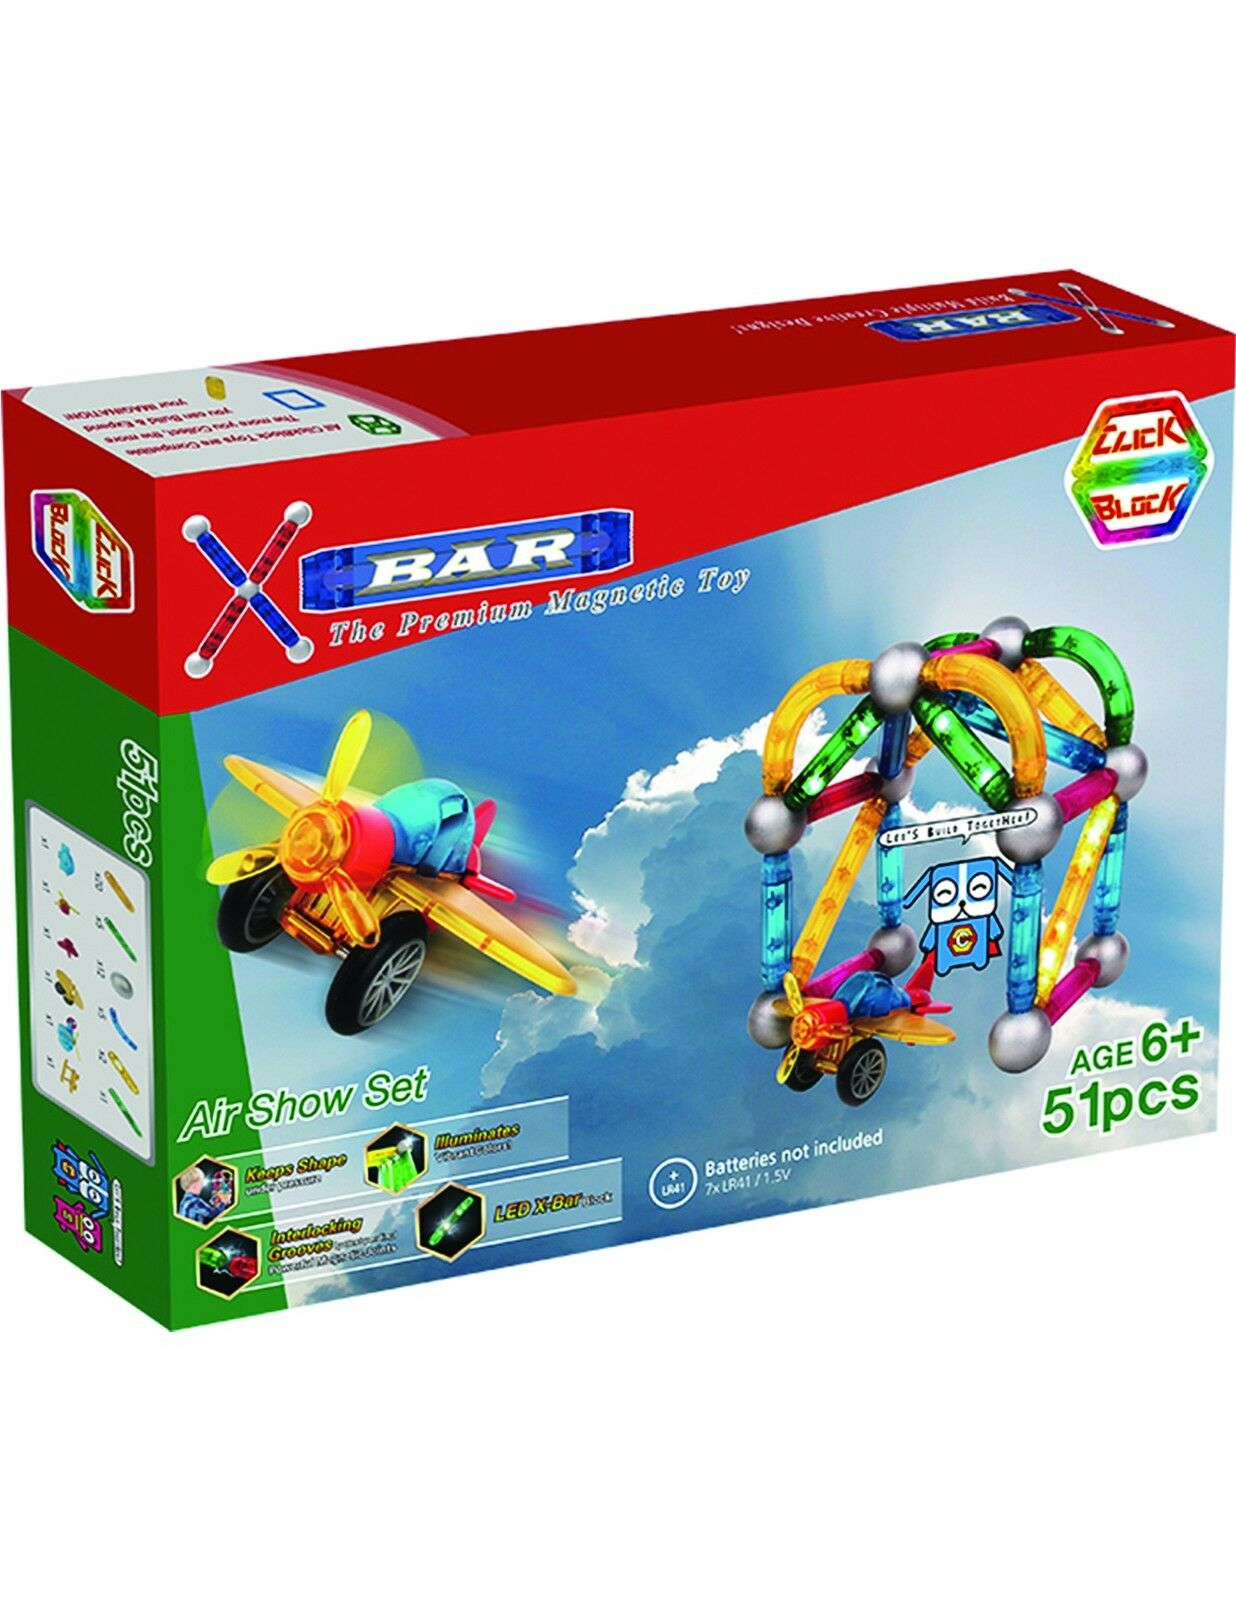 X-Bar Translucent Magnetic Bars and Steel Spheres, 51 Piece Air Show Set